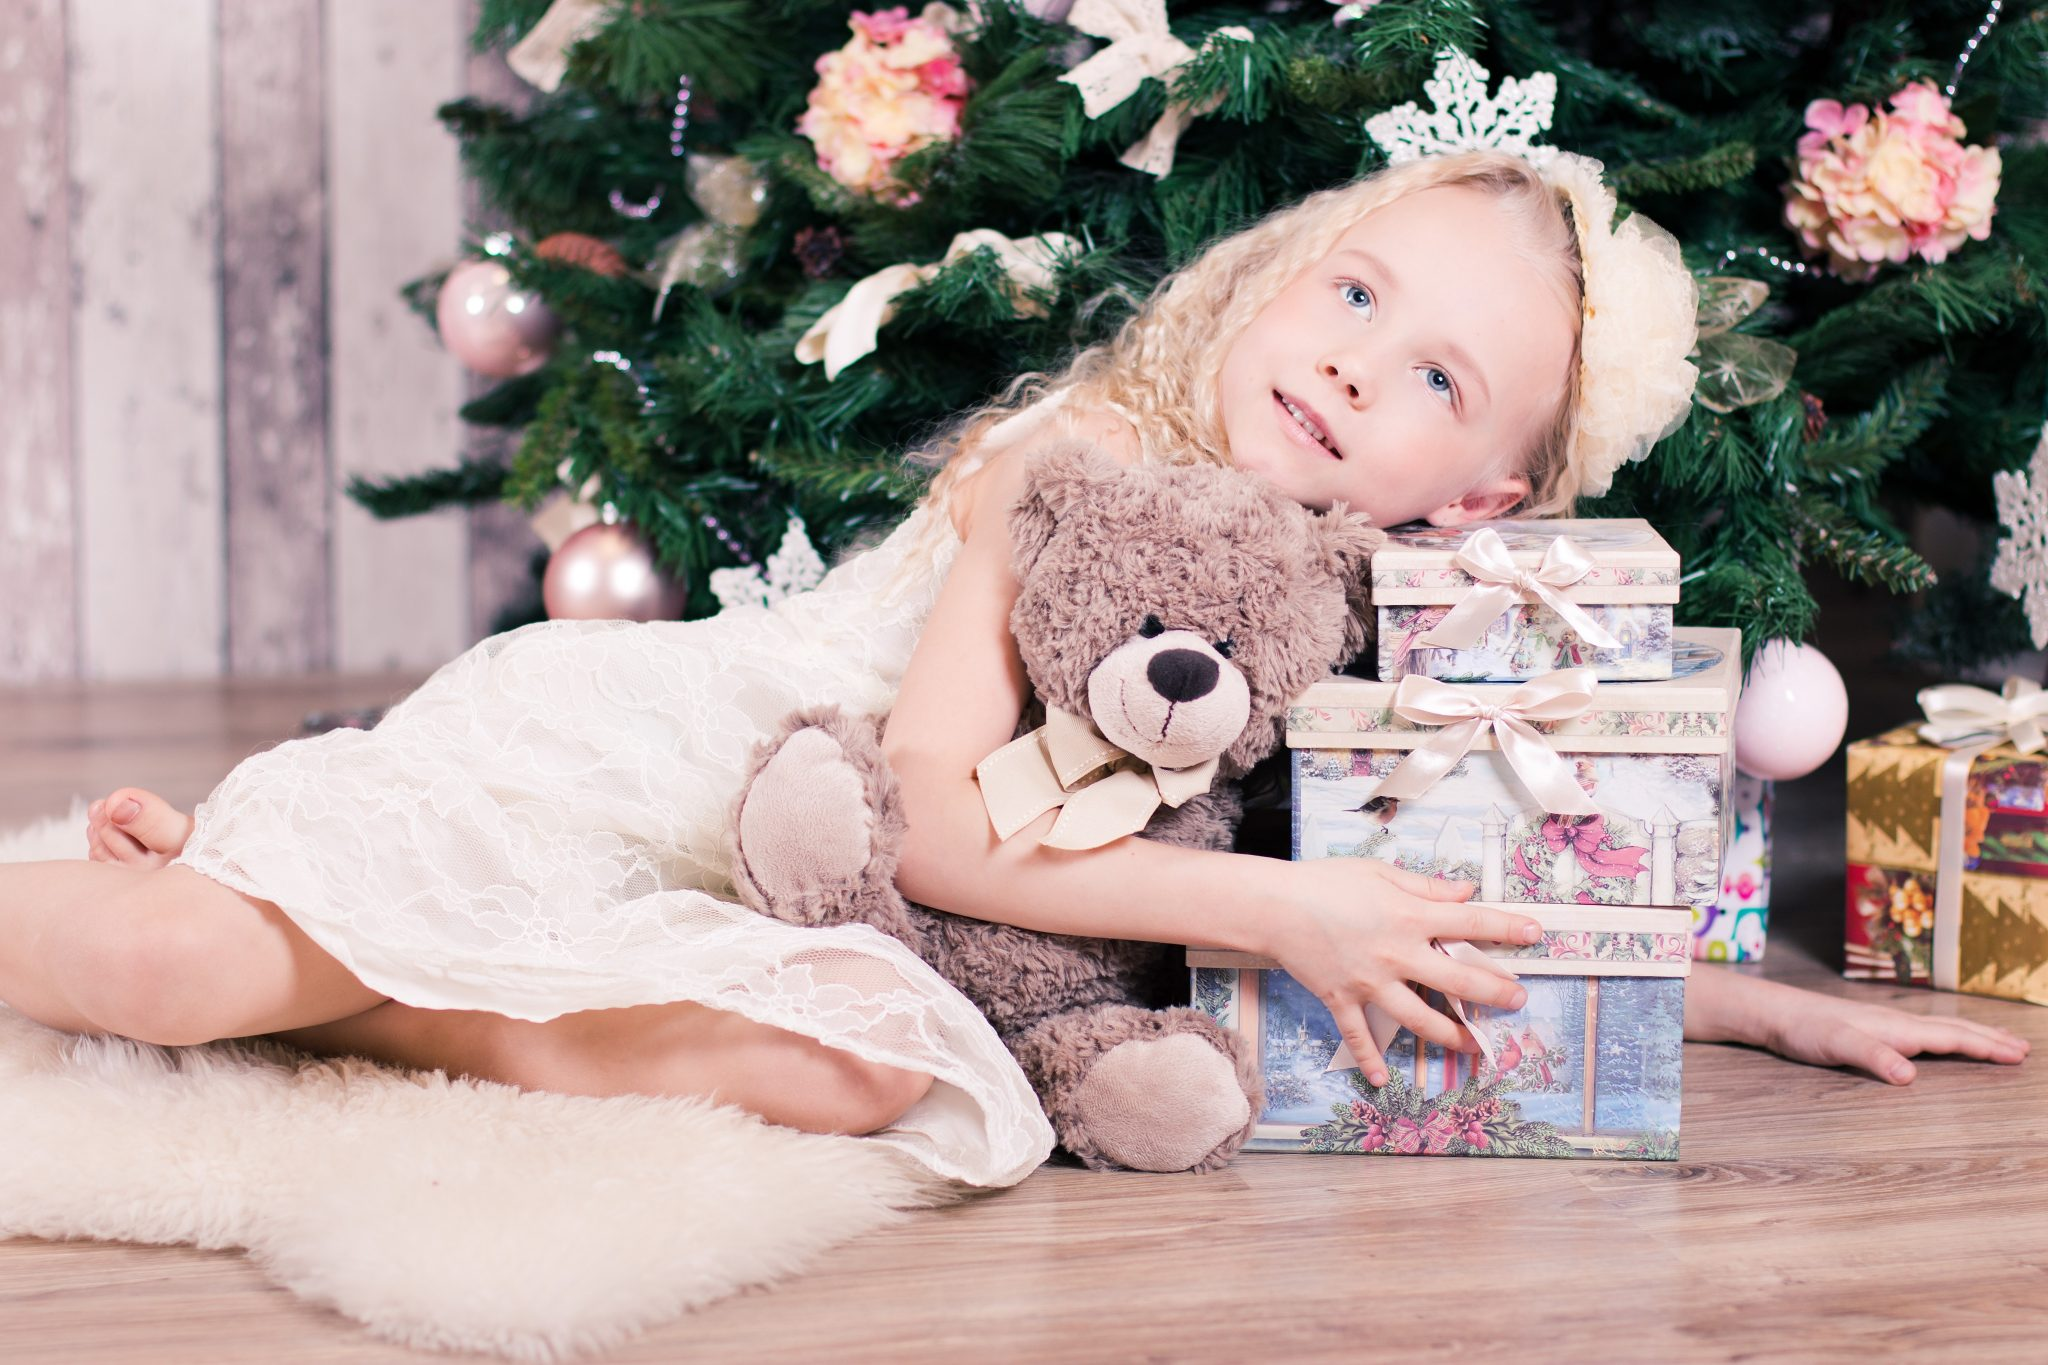 Top Toys 2020 Christmas: Most Popular Holiday Gifts For Girls And Boys (1 To 14 Year Olds) - Master Influencer Magazine